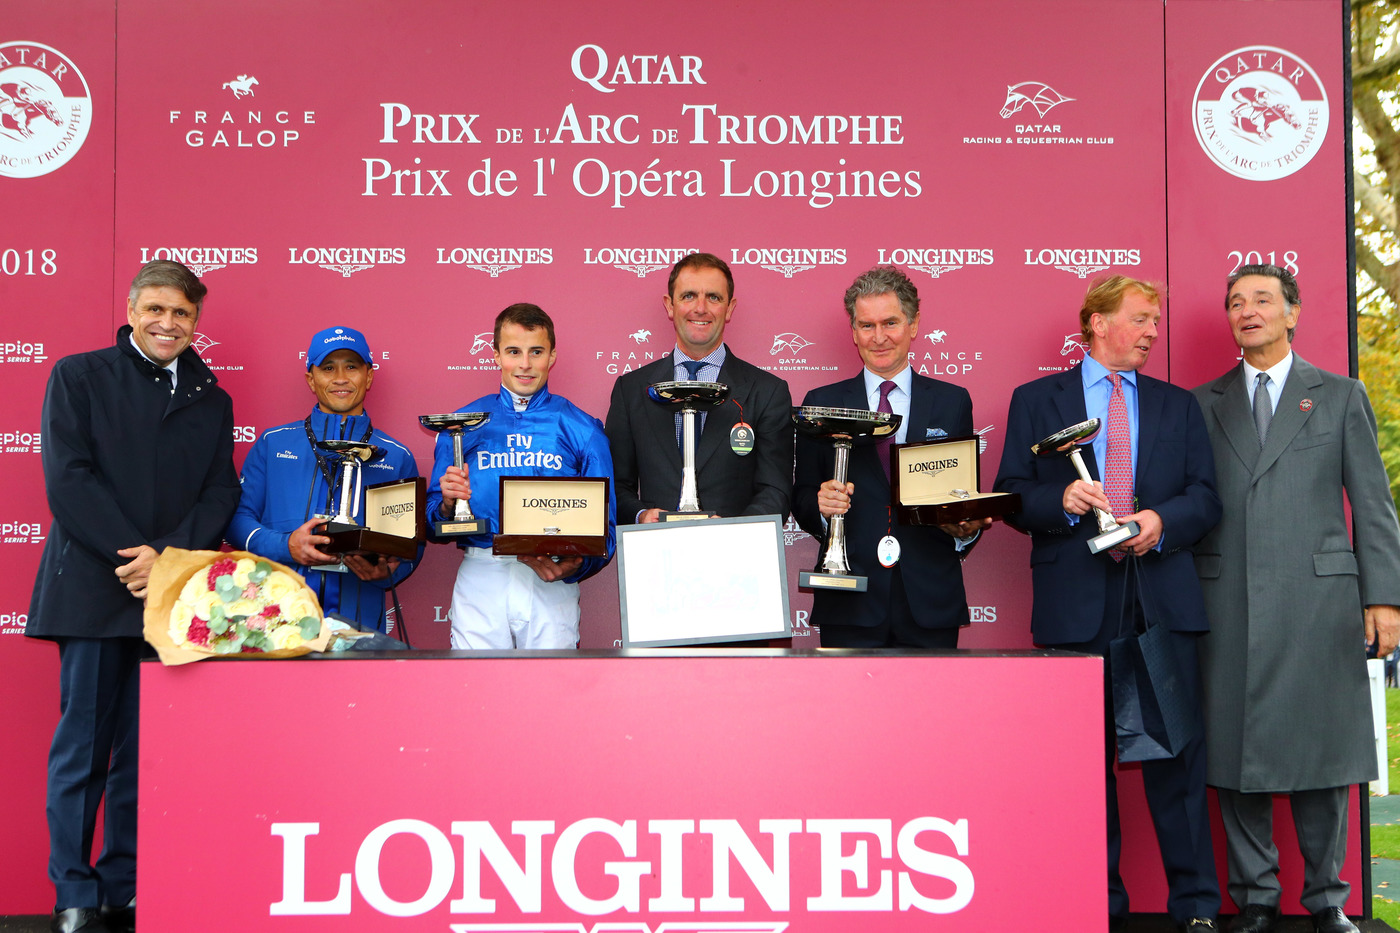 Longines Flat Racing Event: Longines times the Qatar Prix de l'Arc de Triomphe  back at ParisLongchamp 4